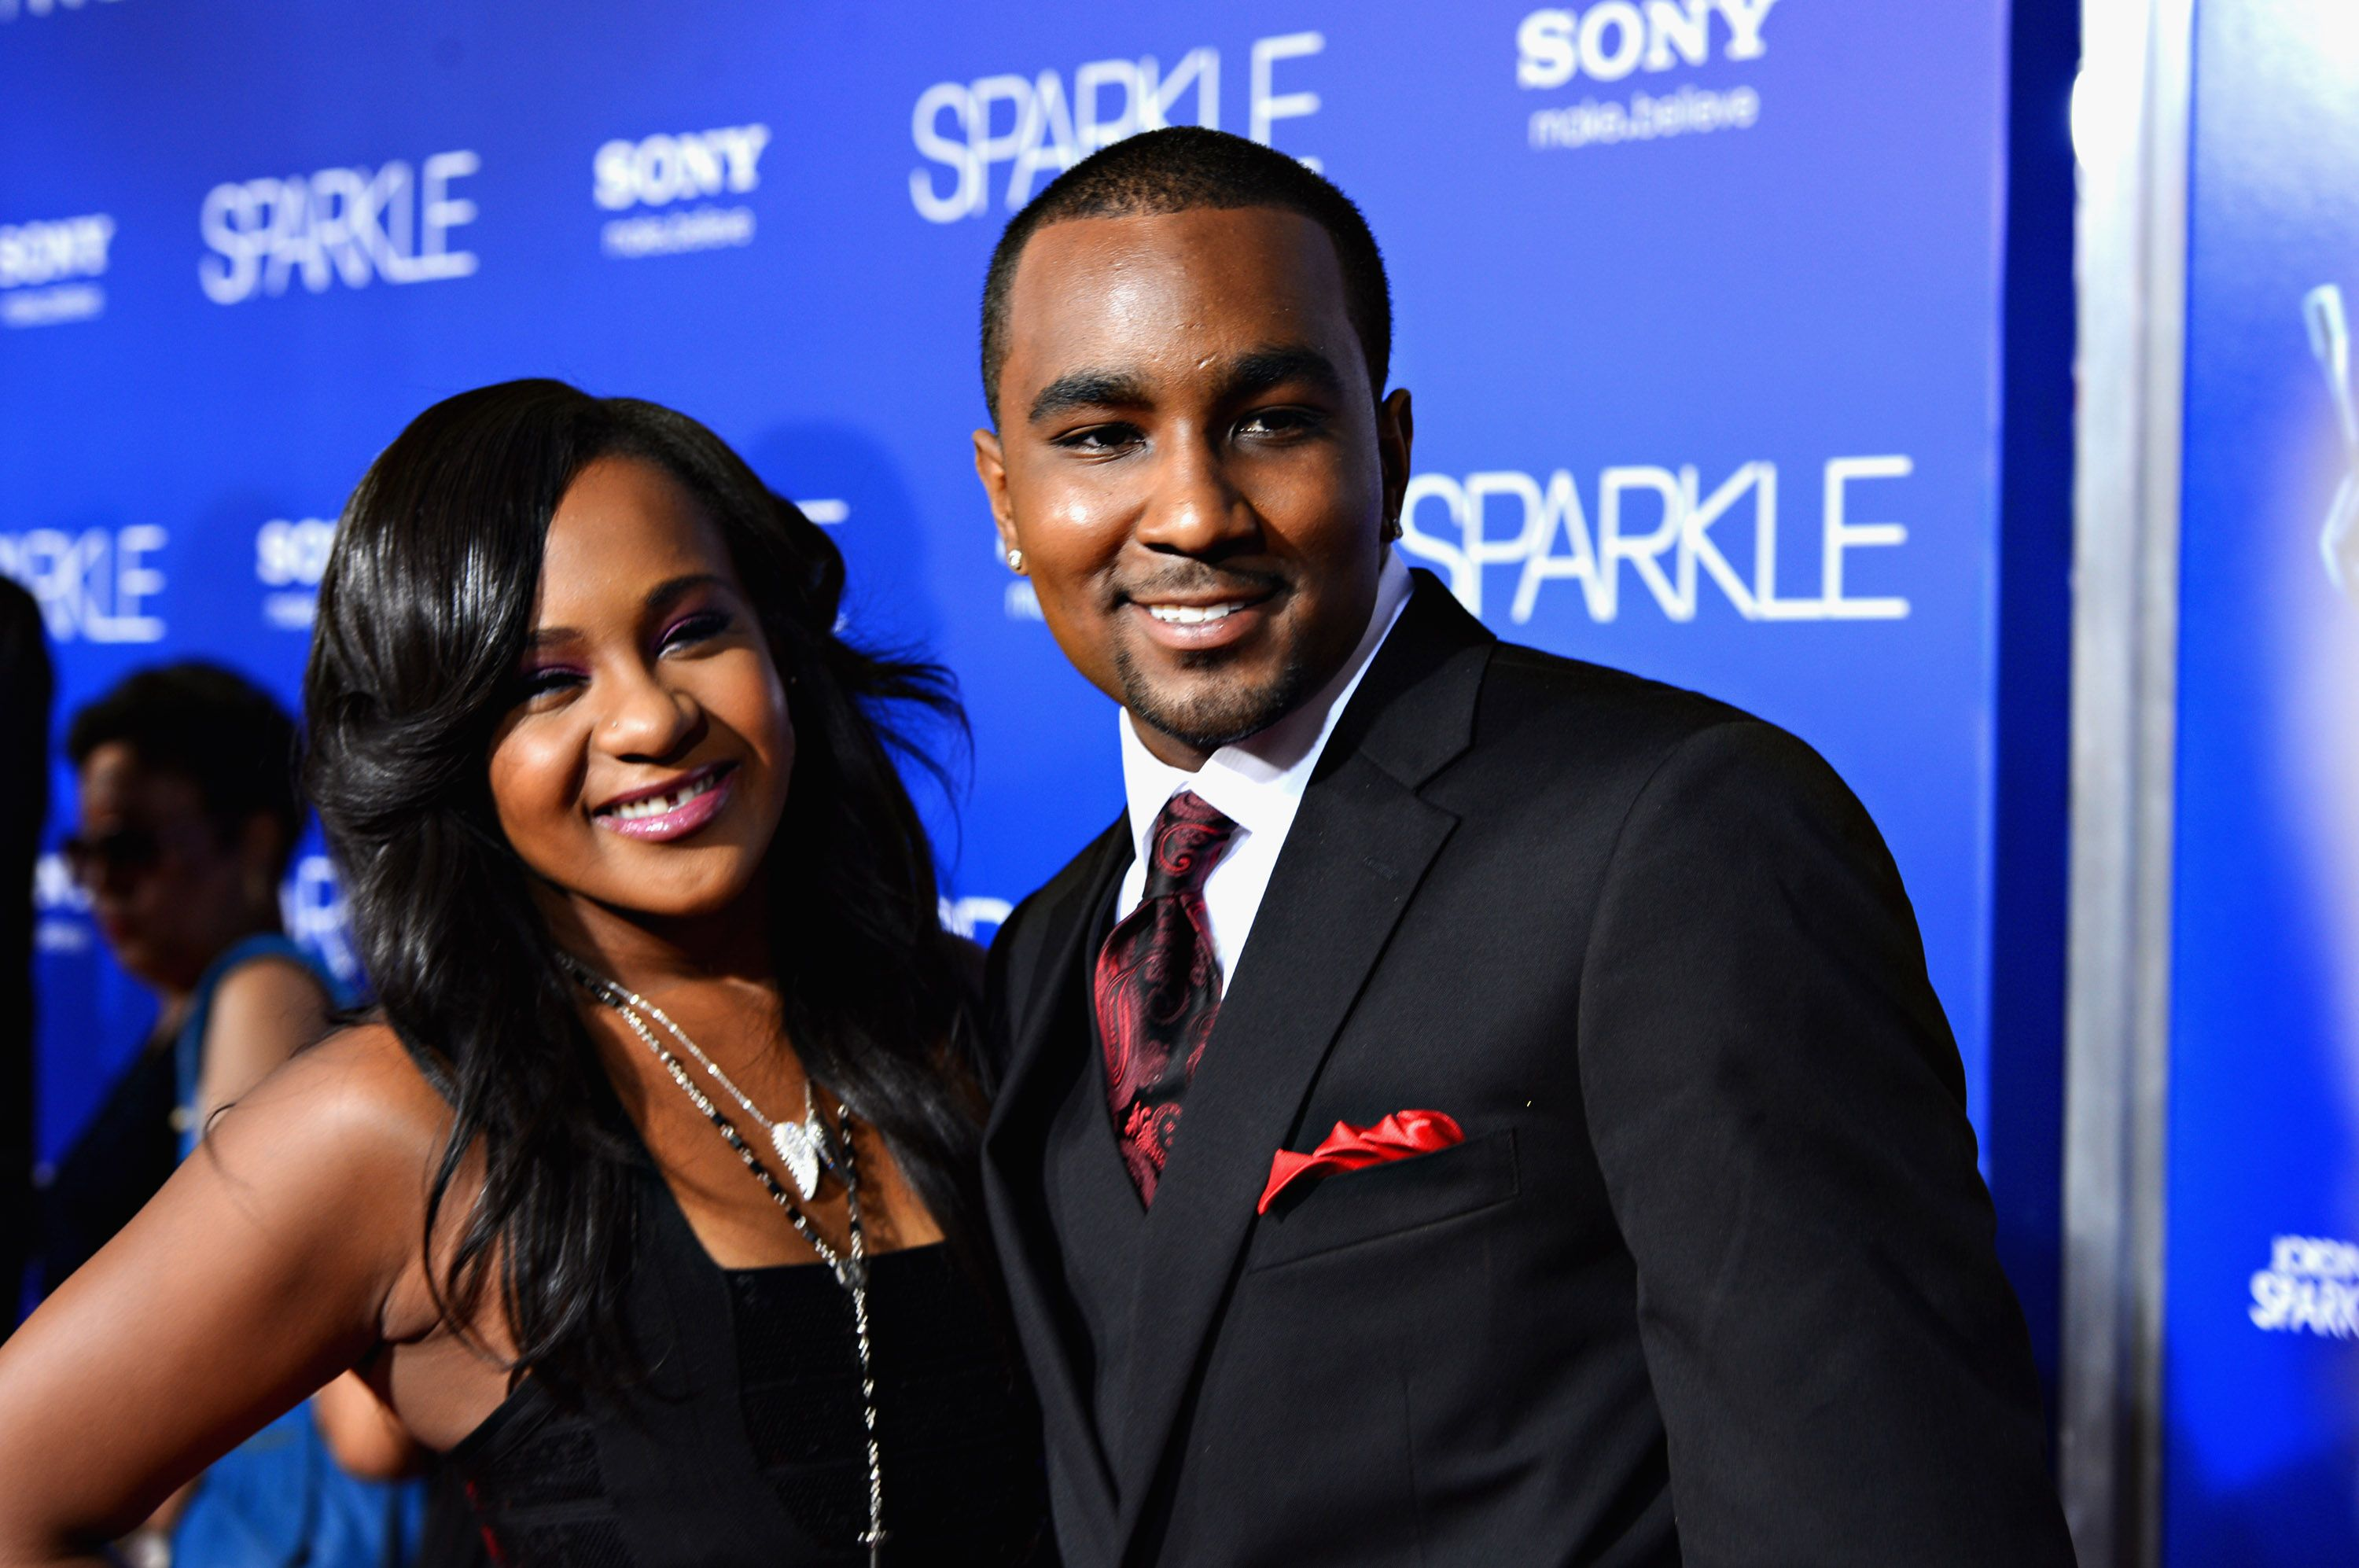 """The late Bobbi Kristina Brown and Nick Gordon at Tri-Star Pictures' """"Sparkle"""" premiere at Grauman's Chinese Theatre on August 16, 2012 